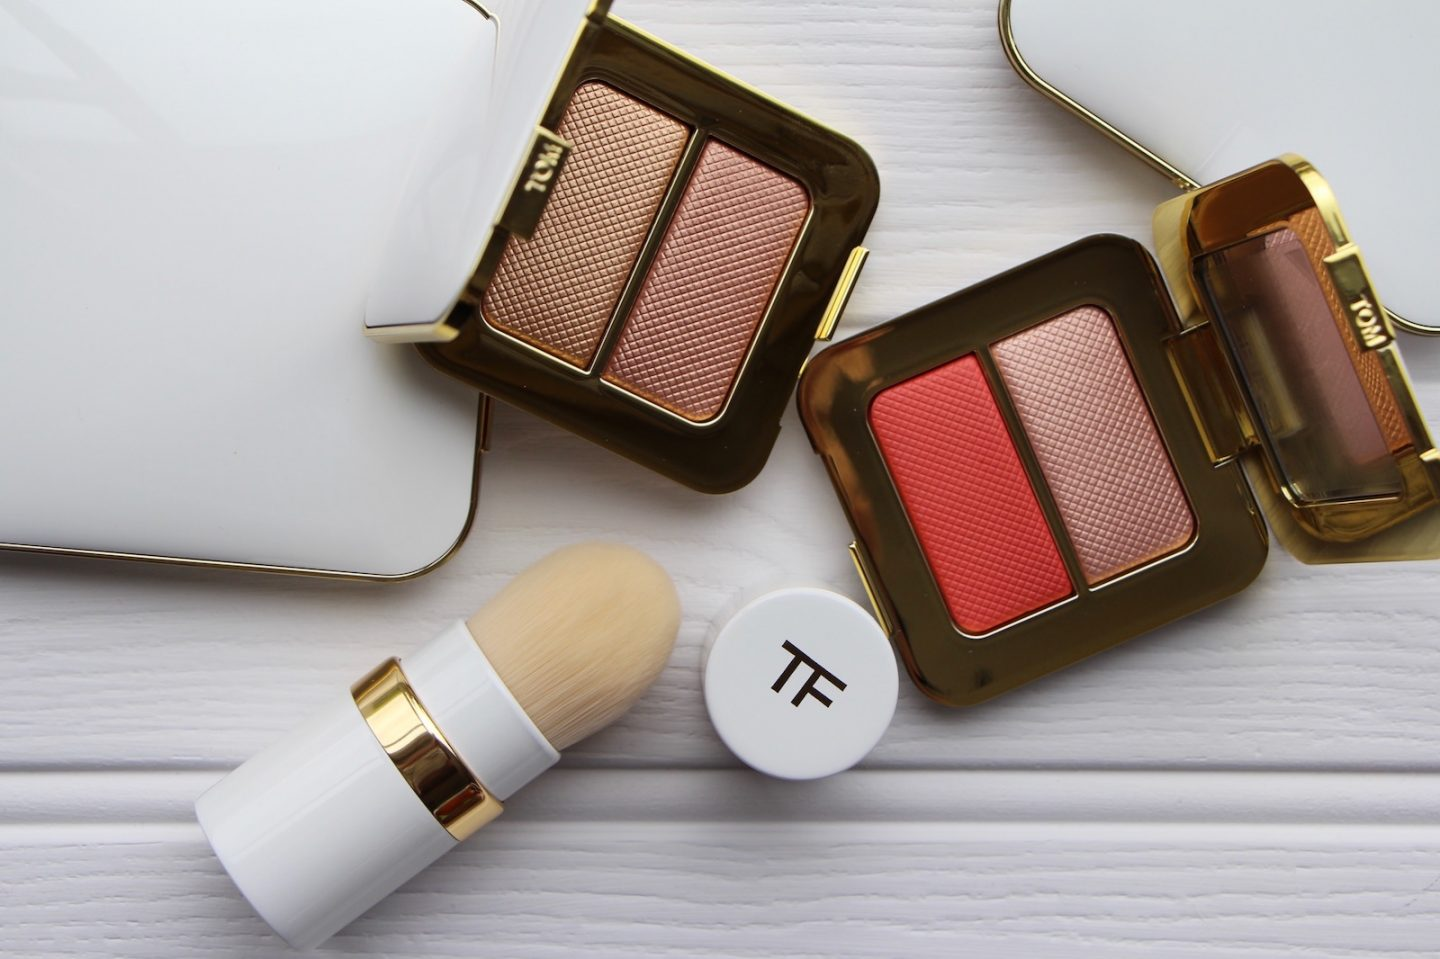 Tom Ford Soleil Makeup Collection